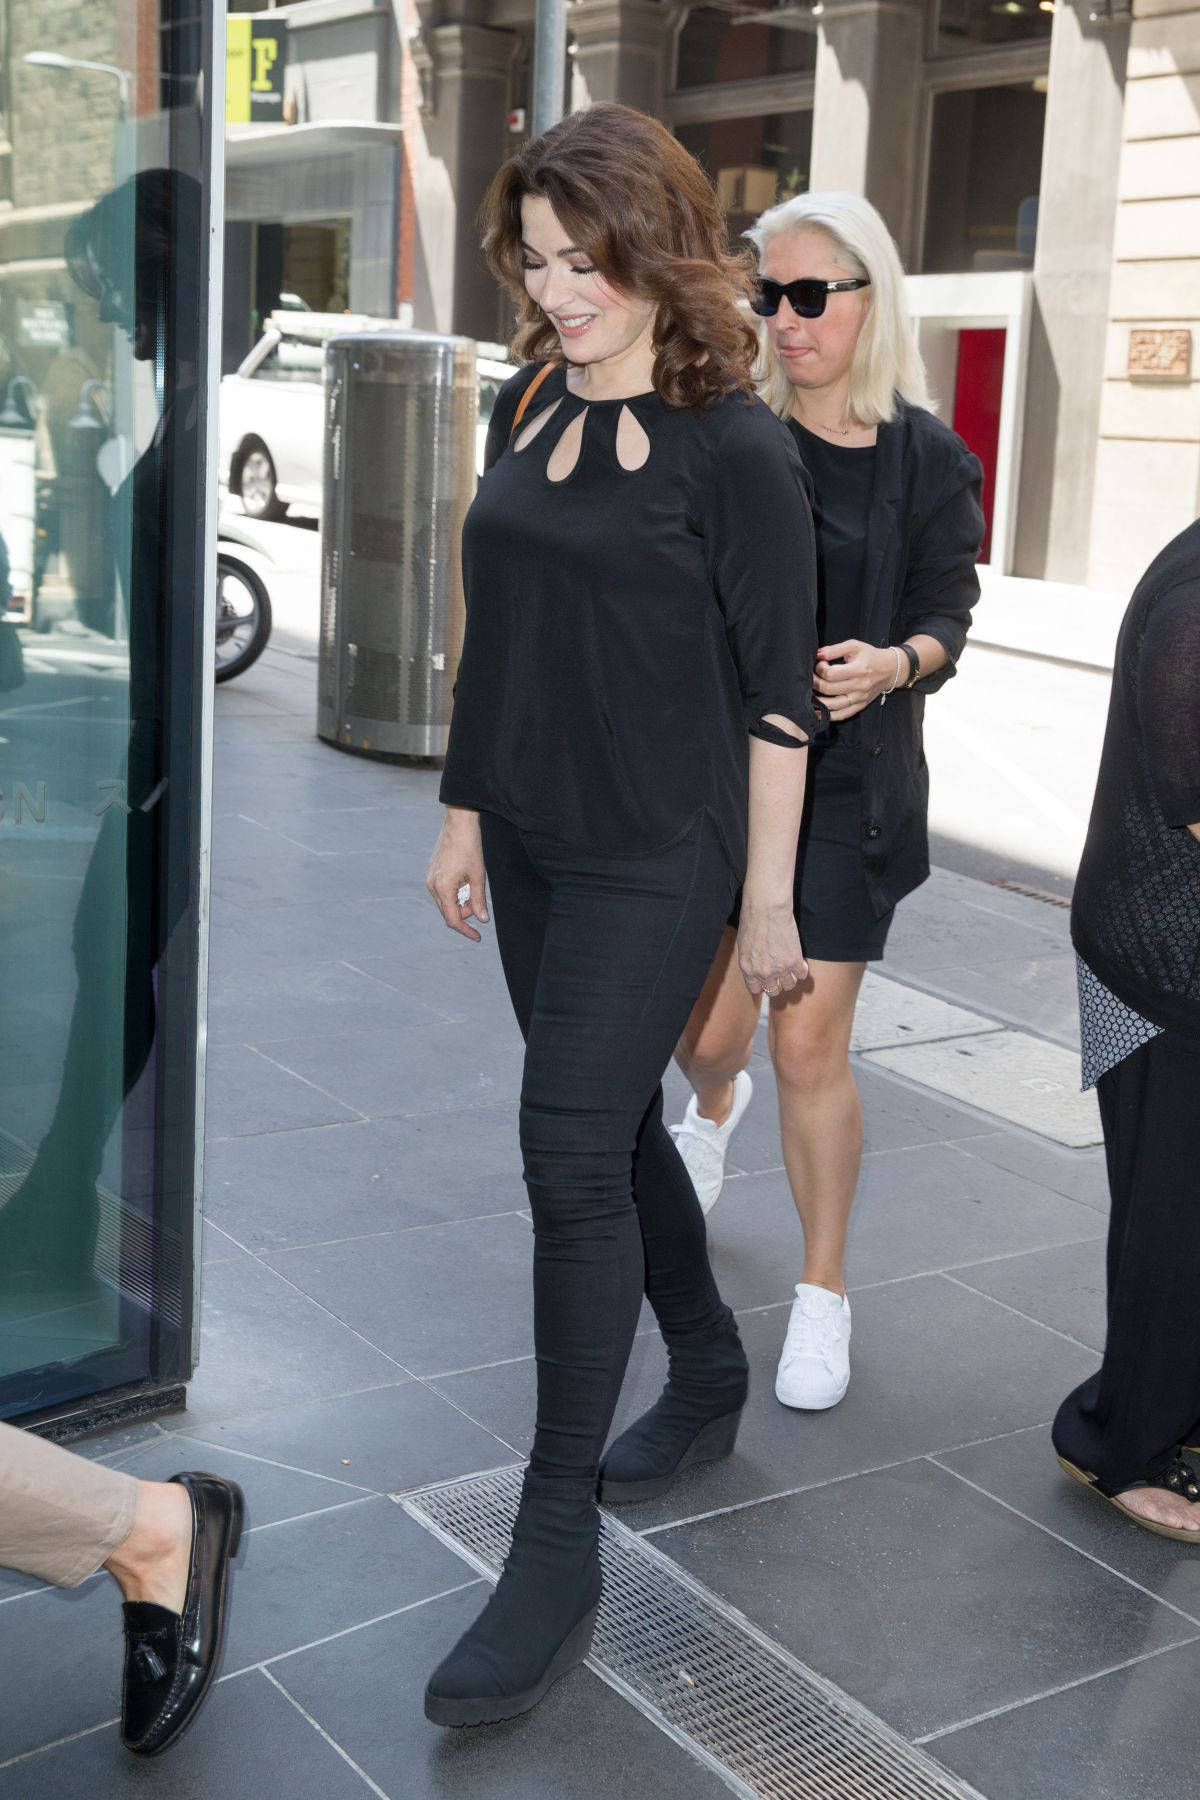 nigella lawson arrives at a restaurant in melbourne 01182016 - Gray Restaurant 2016